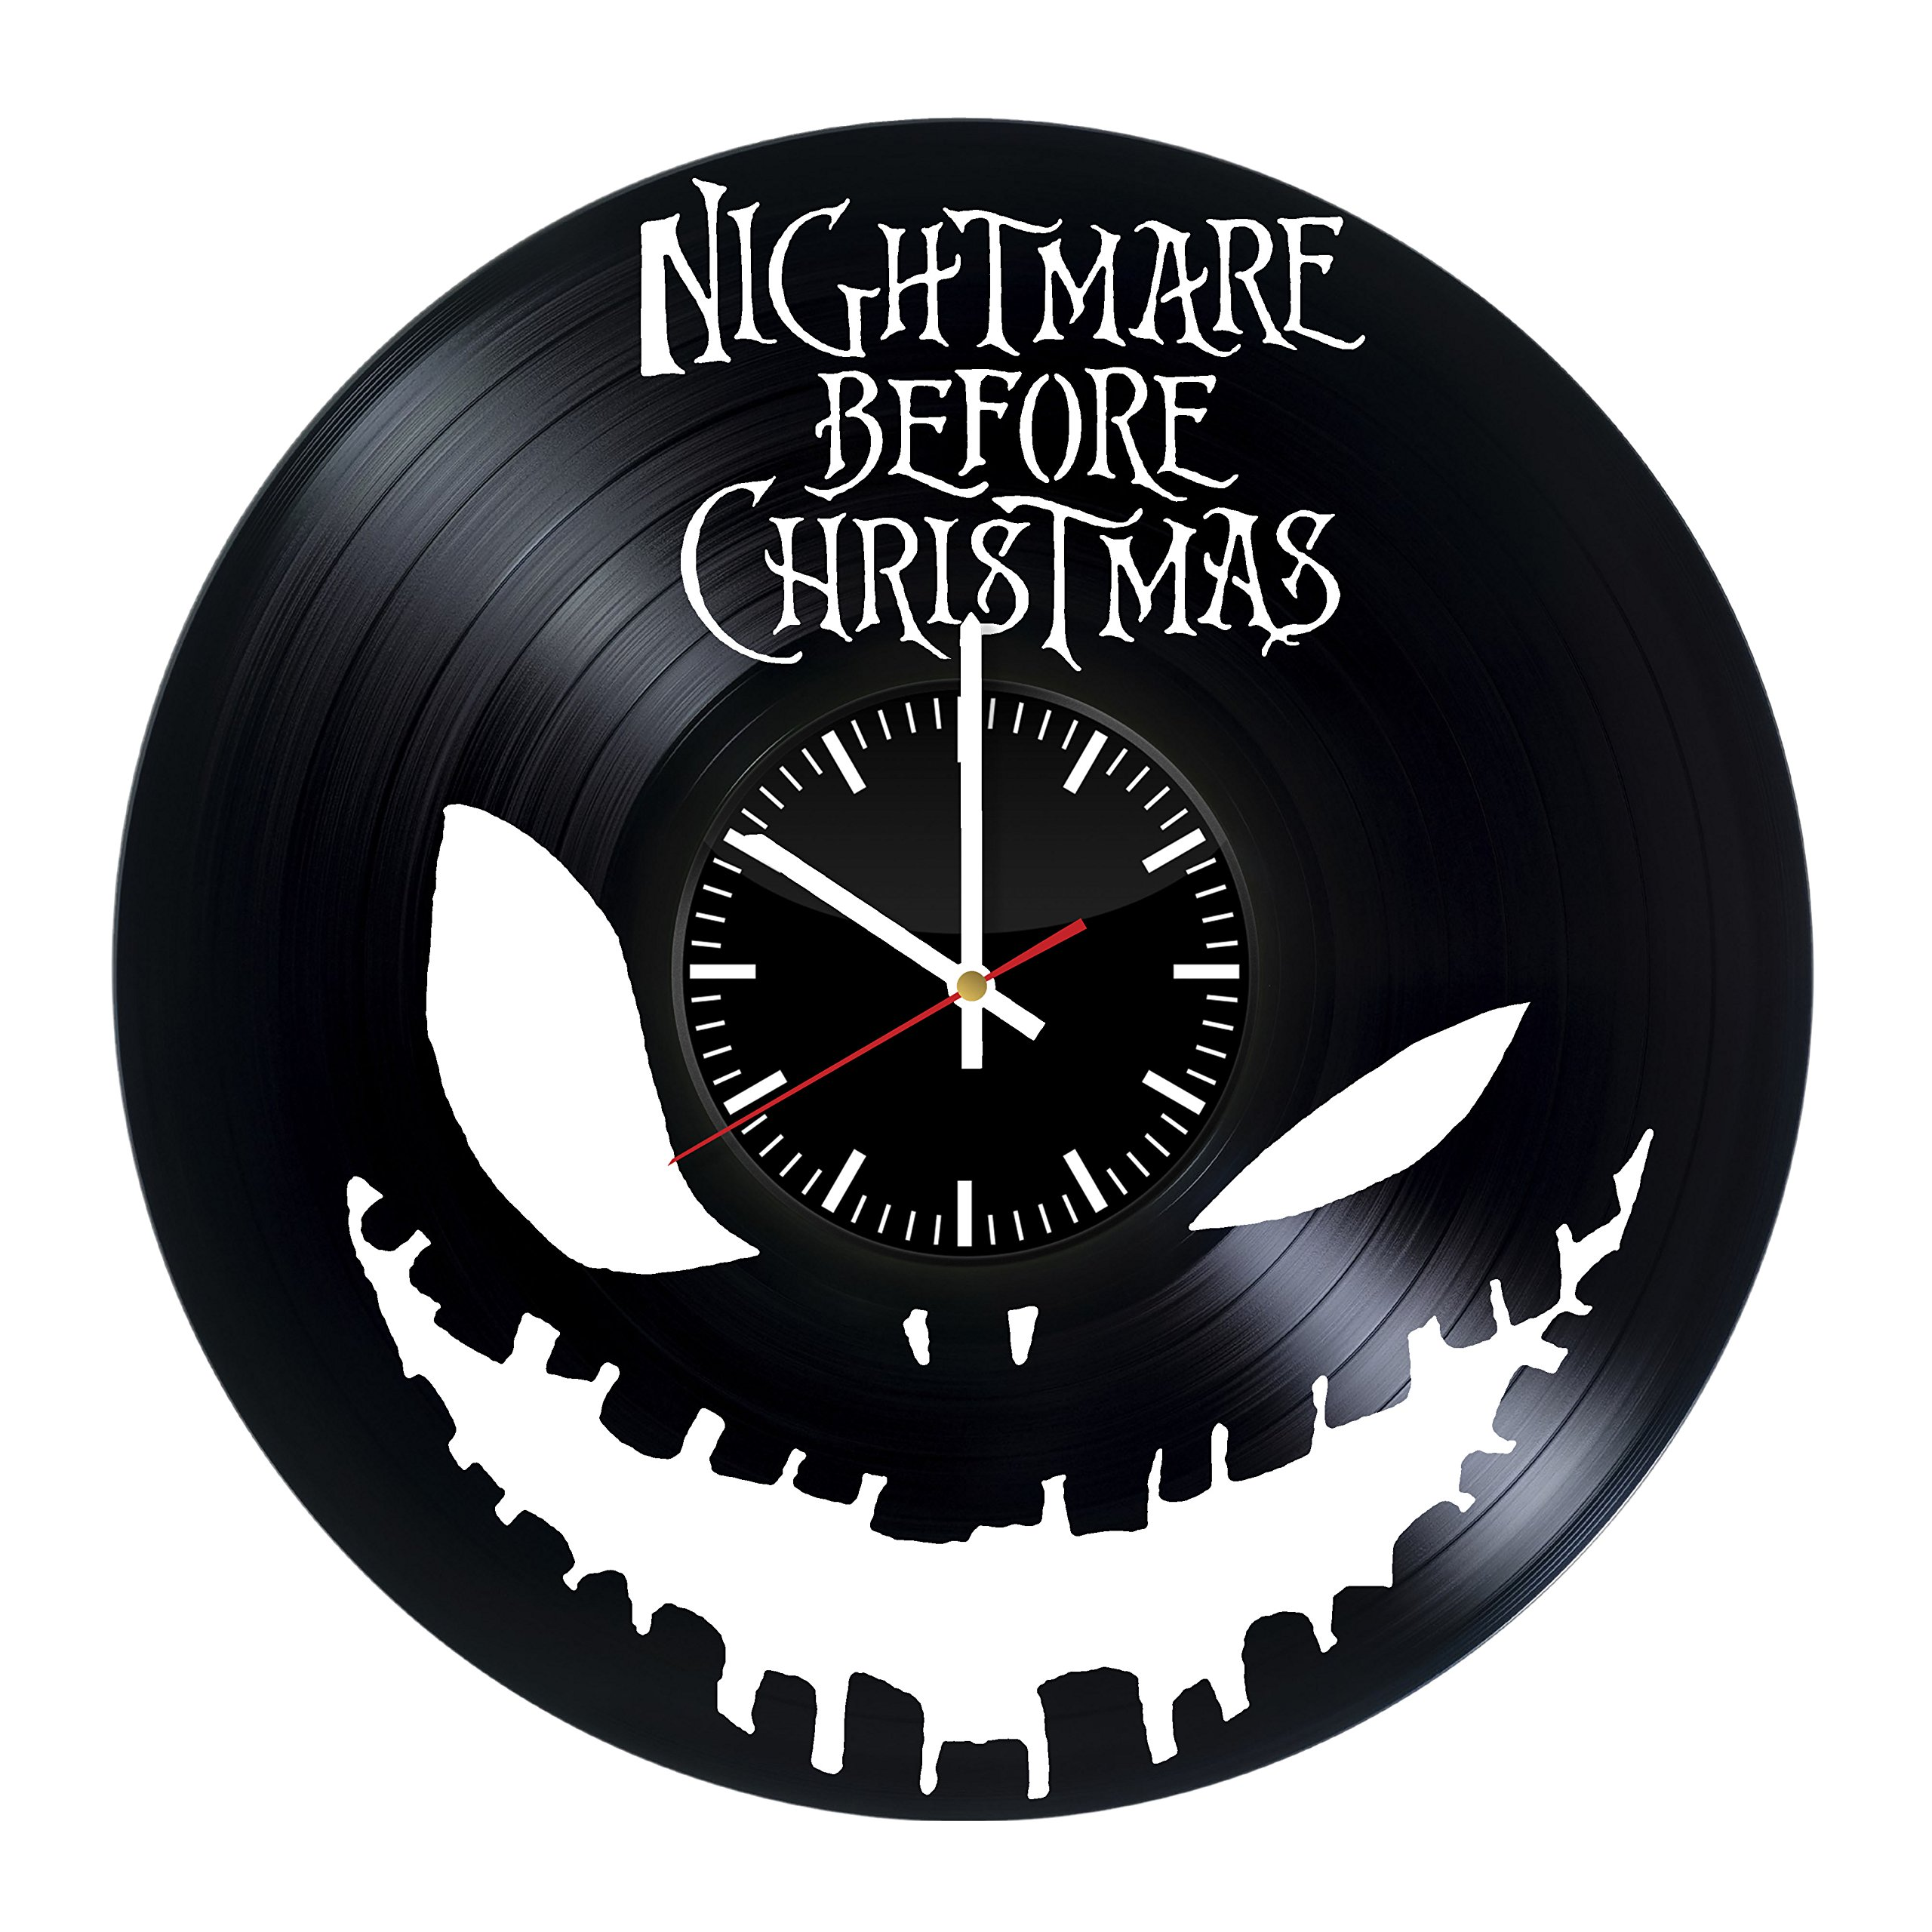 Nightmare Before Christmas Vinyl Record Wall Clock.Get unique home ...